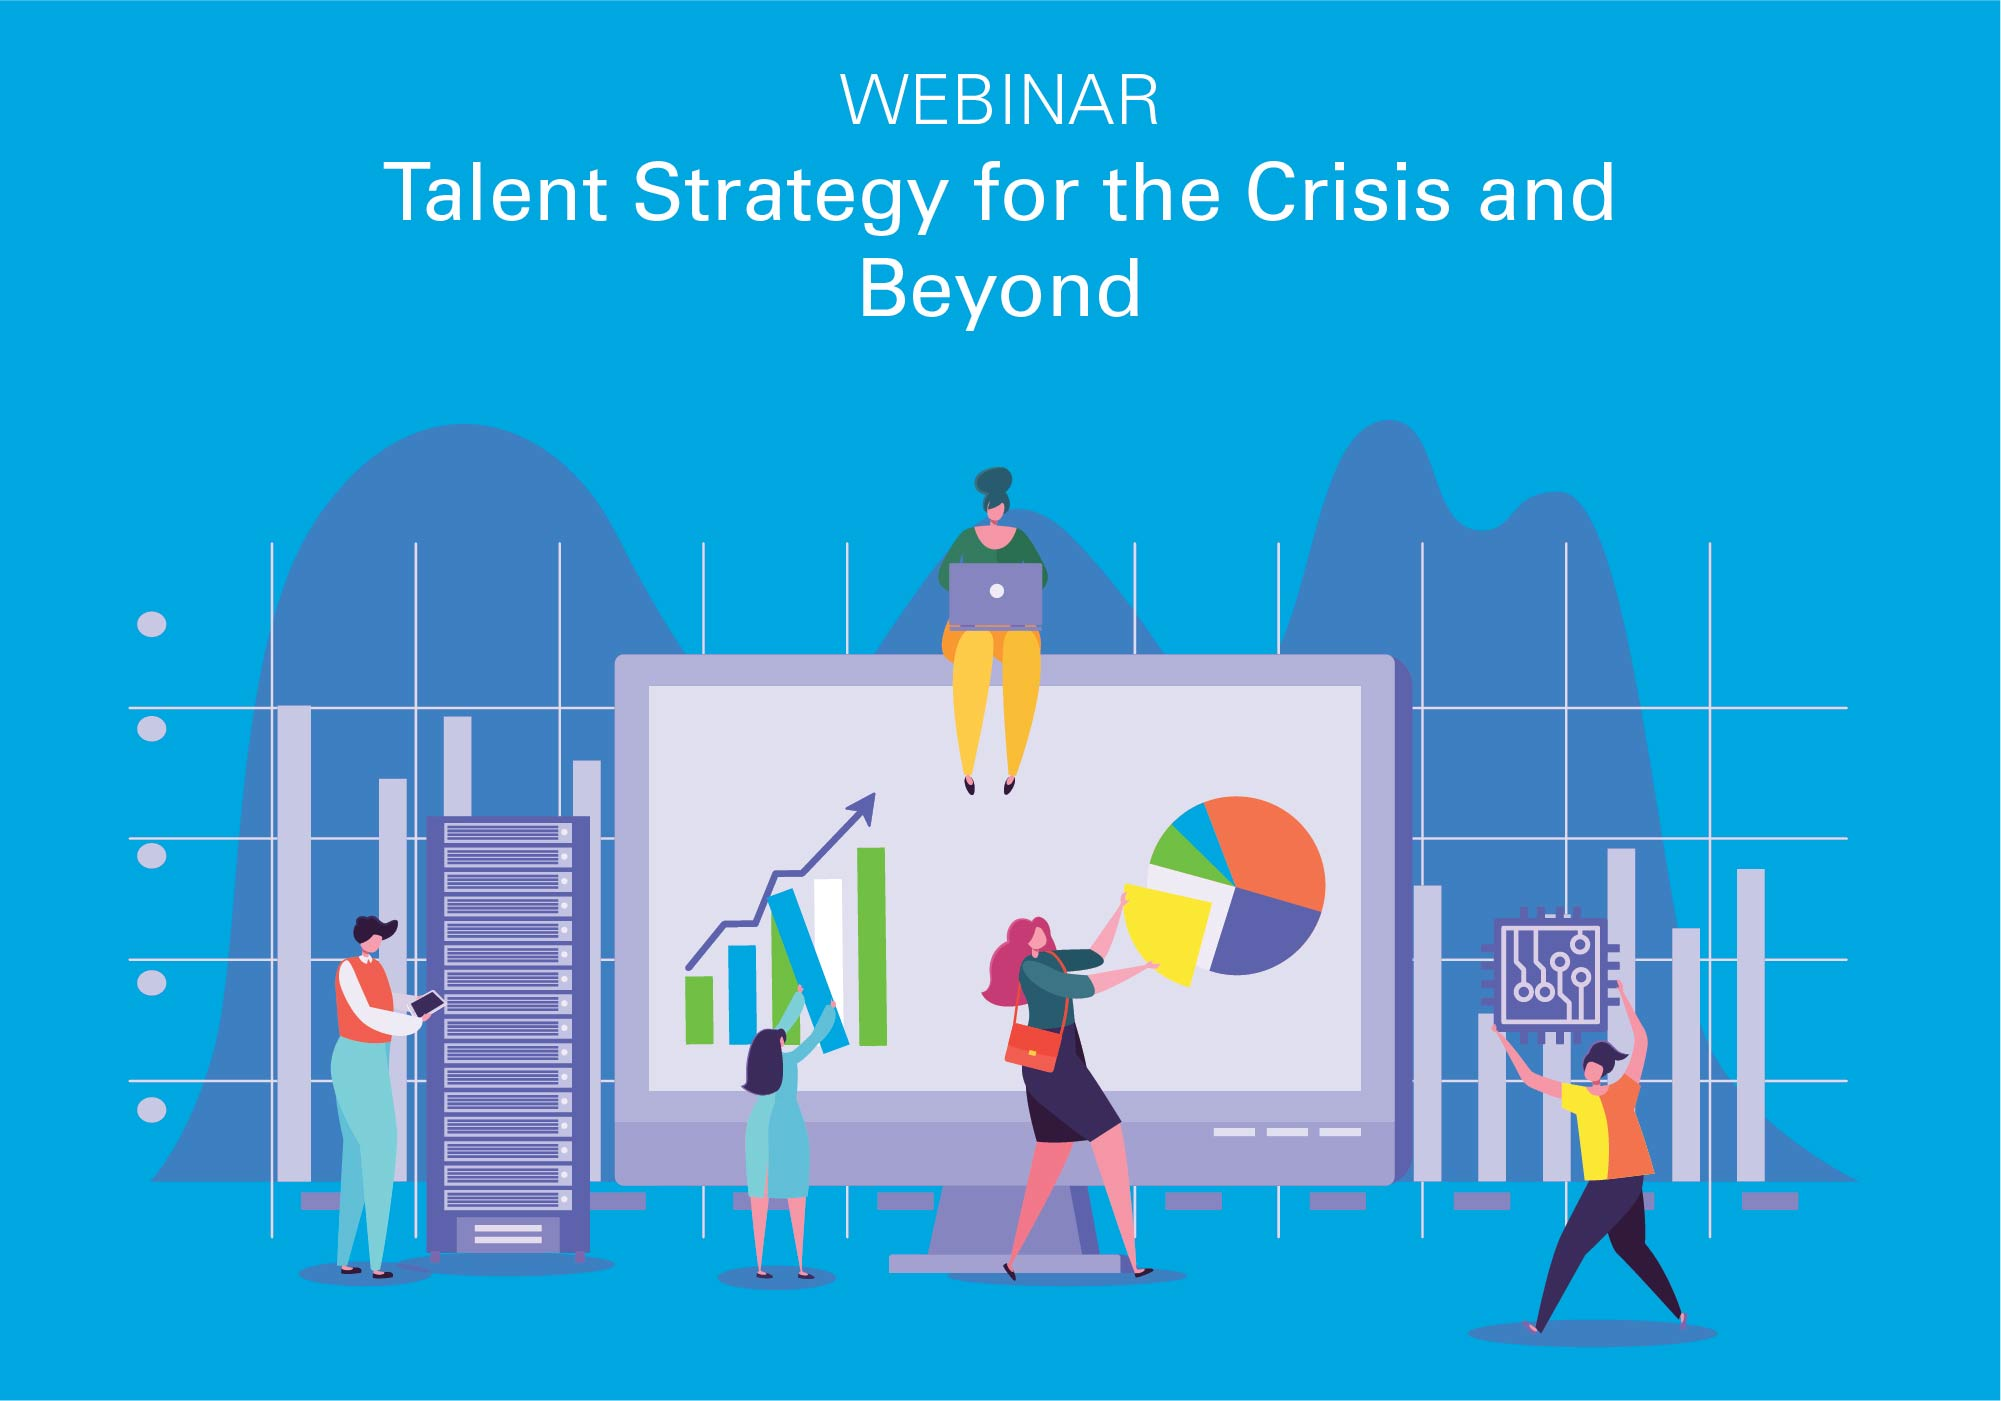 webinar talent strategy for the crisis and beyond